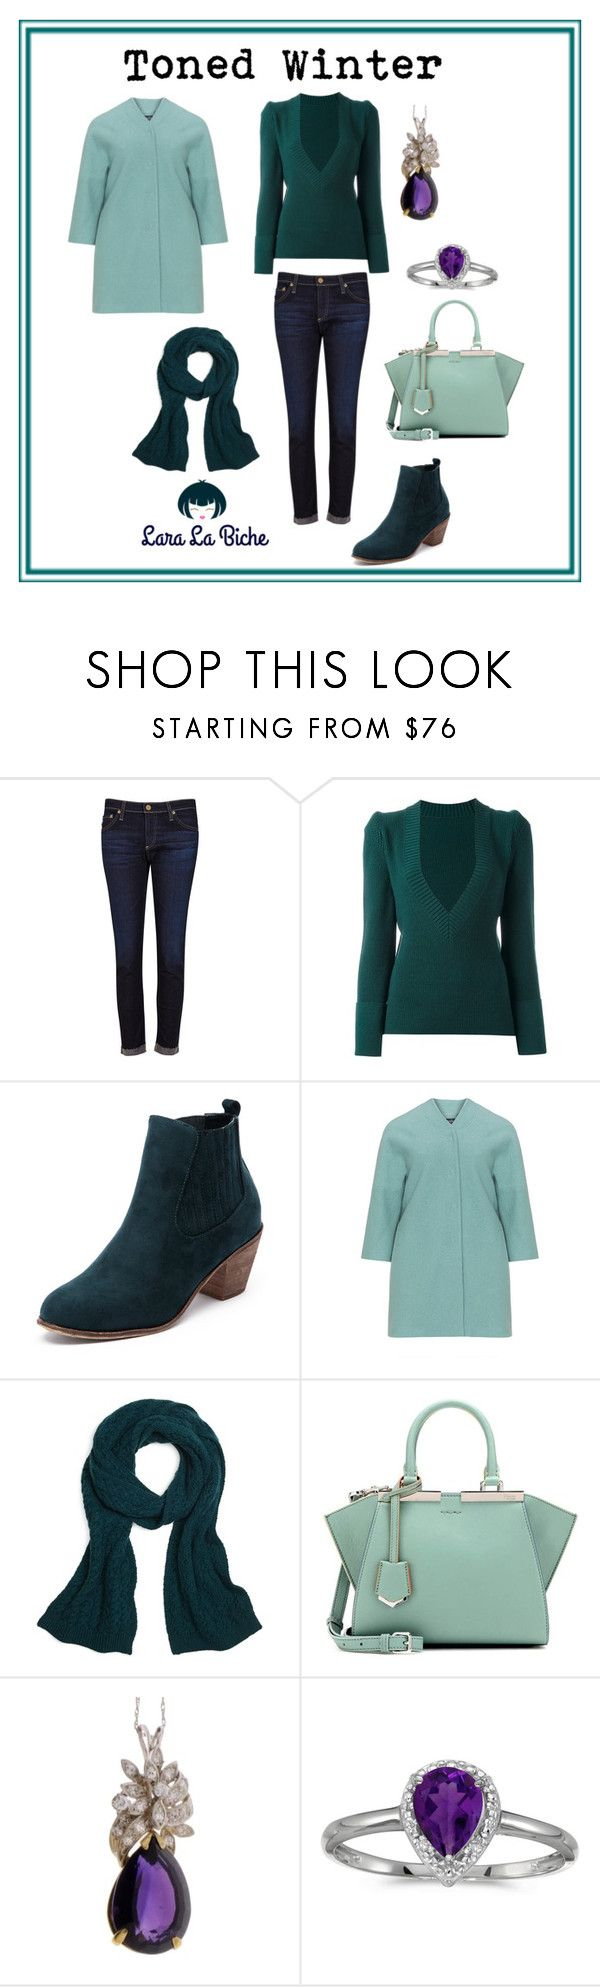 """""""toned winter"""" by laralabiche ❤ liked on Polyvore featuring AG Adriano Goldschmied, Sacai, navabi, Brooks Brothers, Fendi, Diamondsy and BillyTheTree"""